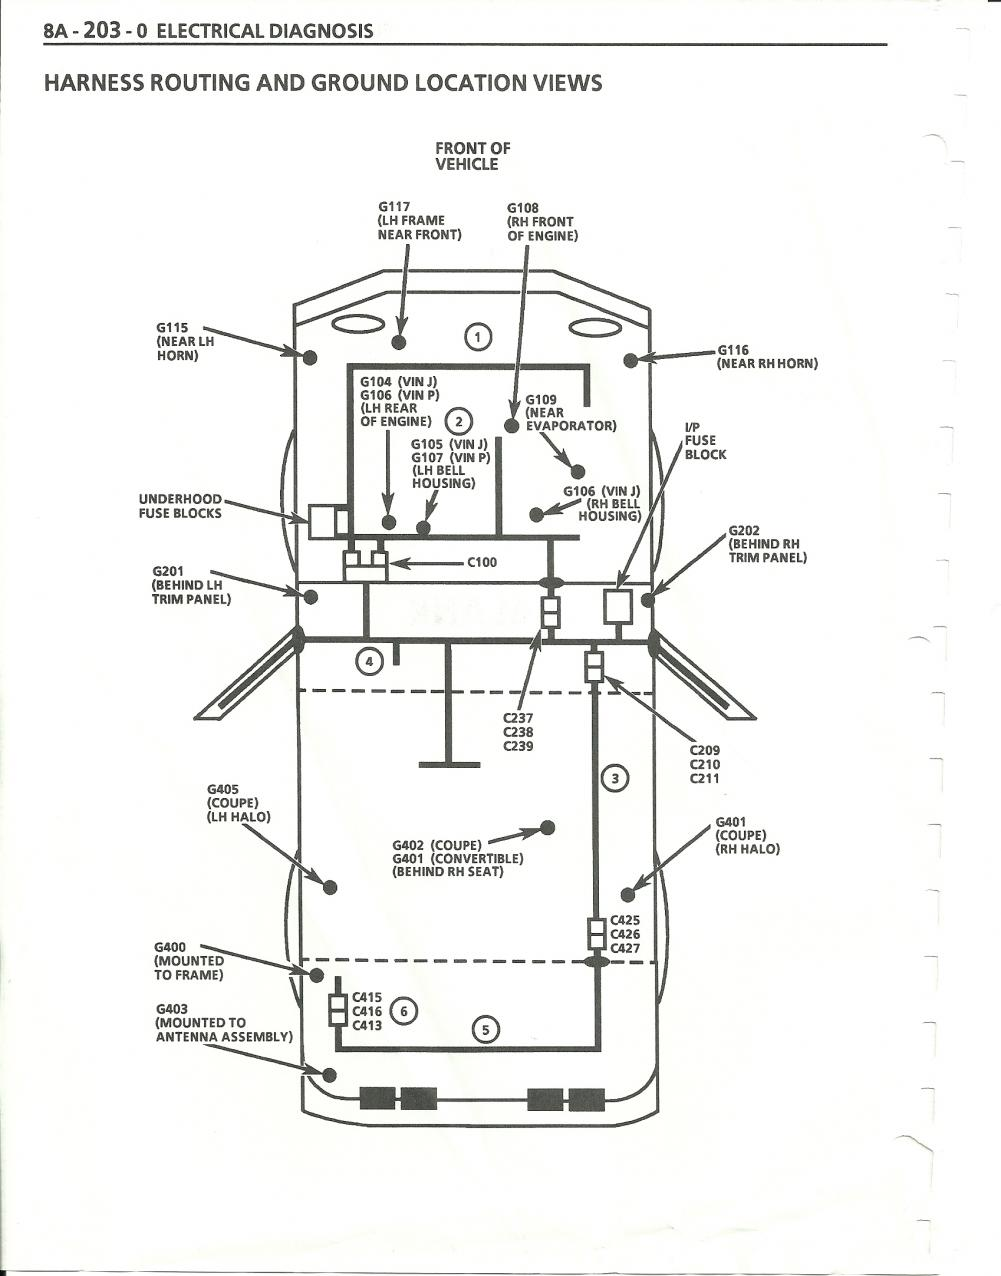 does anyone have access too, a diagram or photos